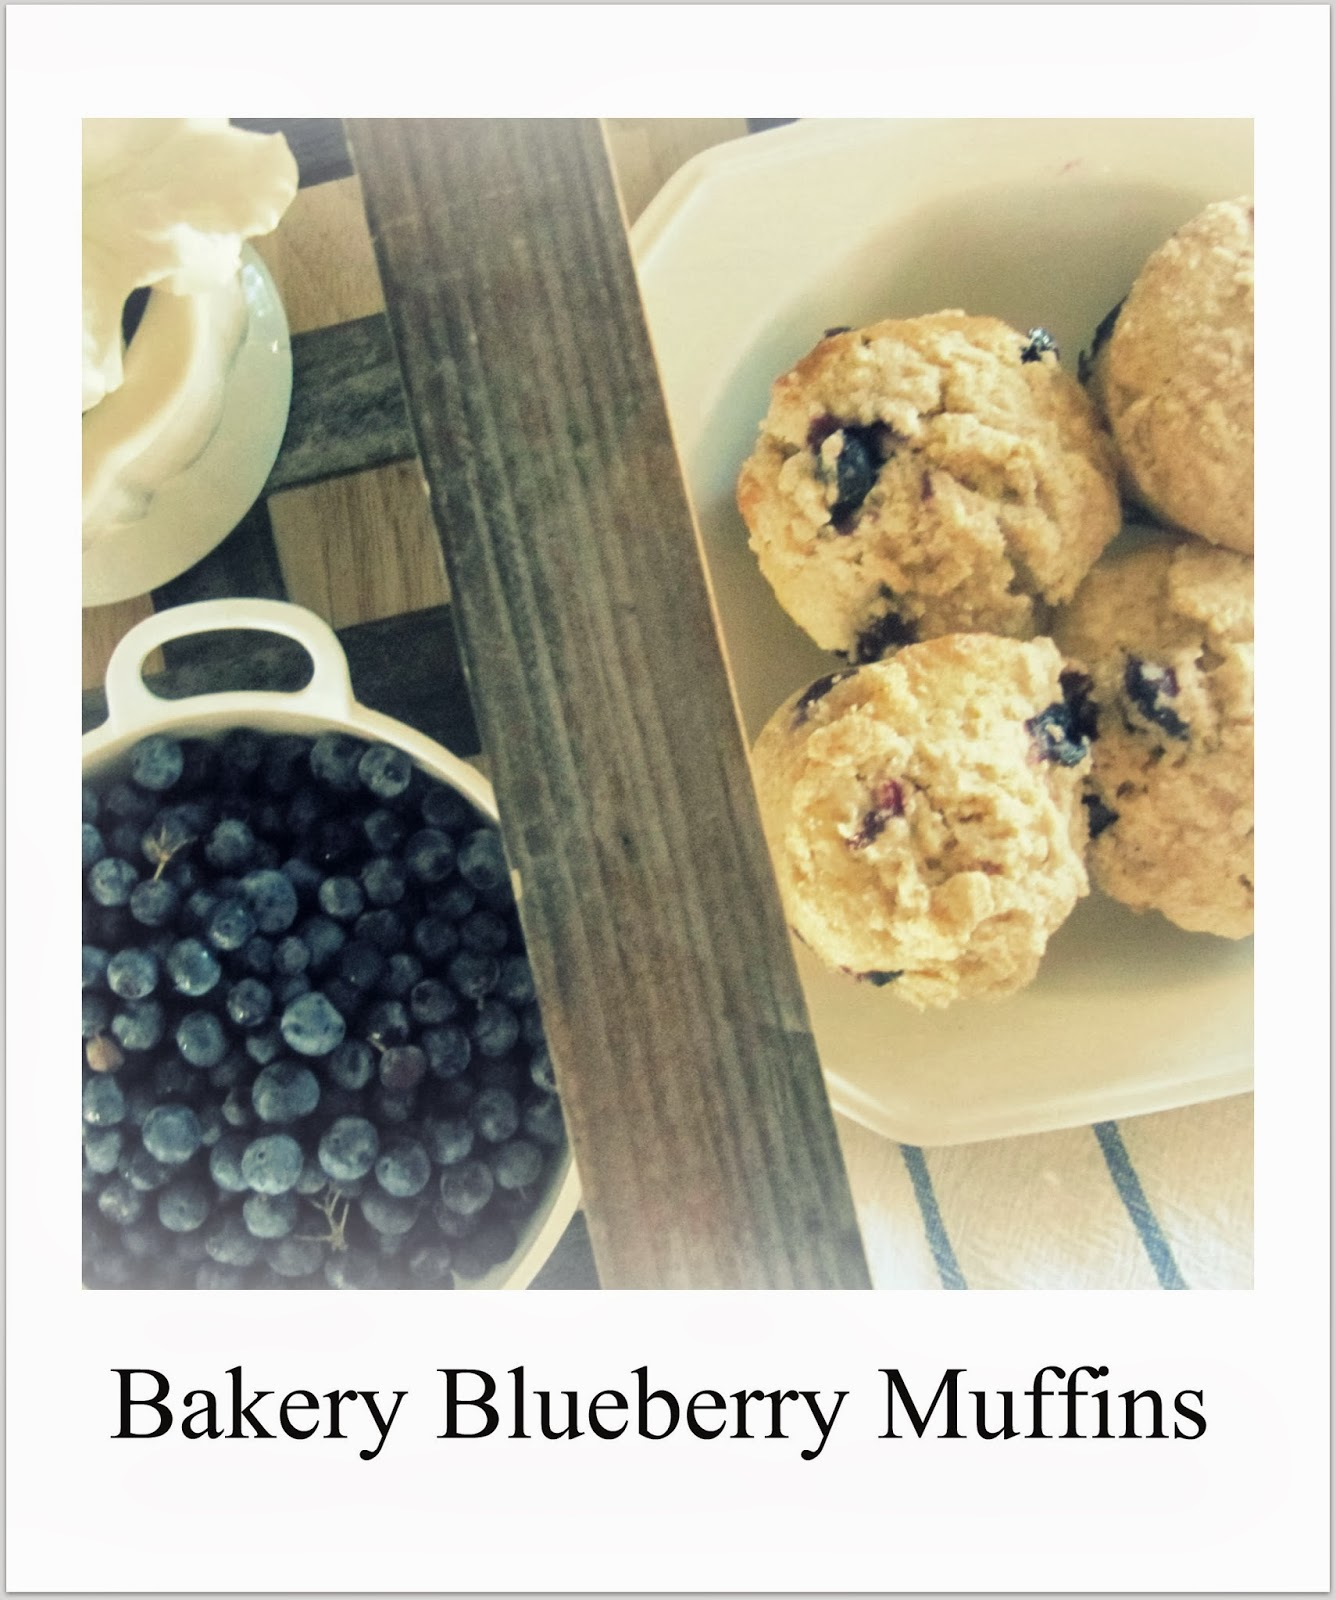 http://thewickerhouse.blogspot.com/2010/07/bakery-blueberry-muffins.html